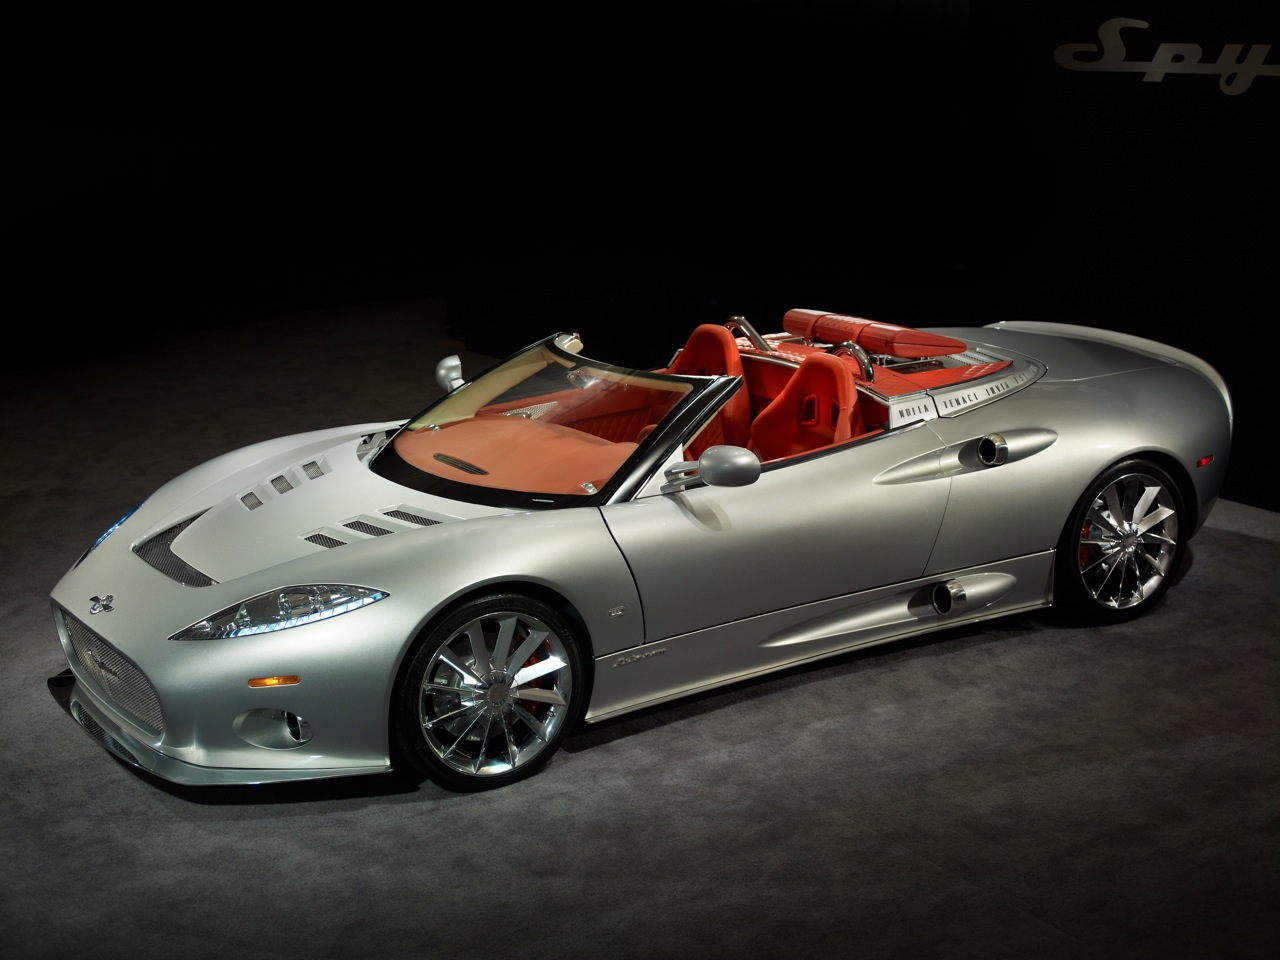 Spyker spyder photo - 1